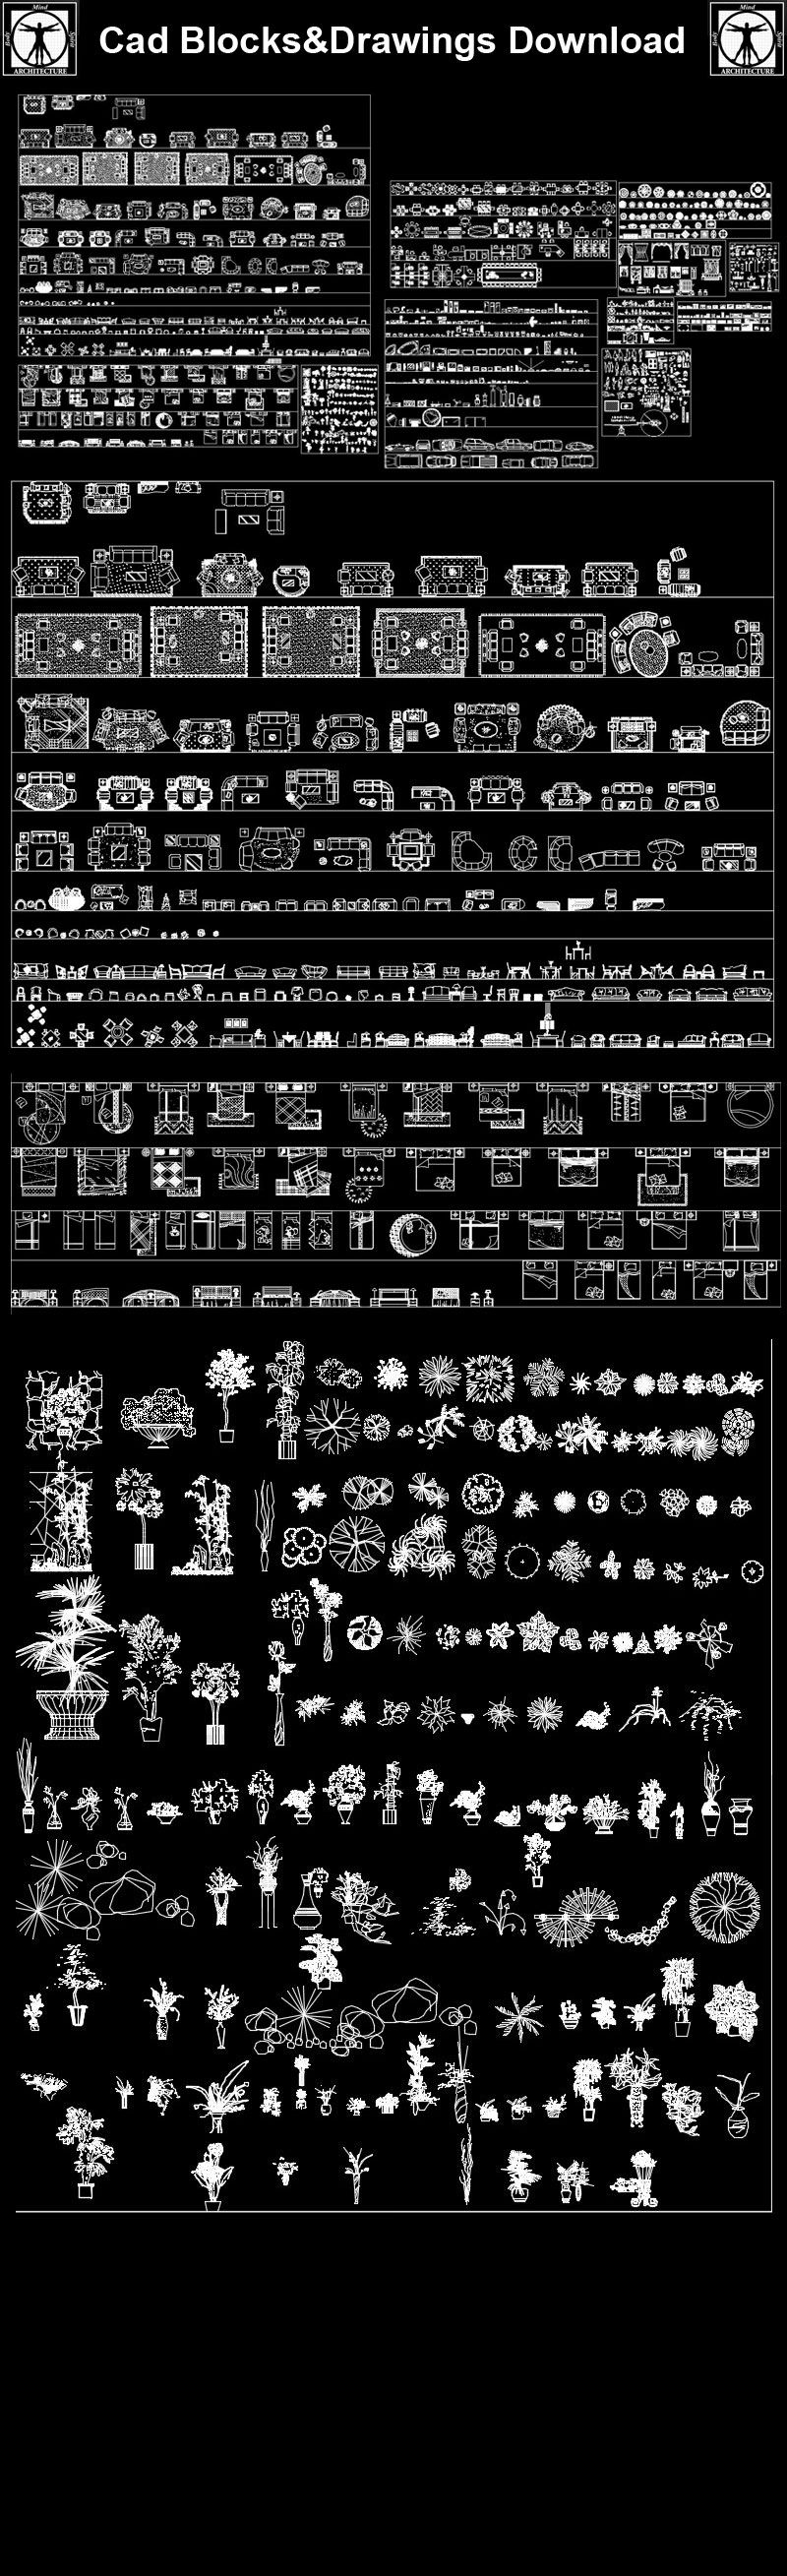 Mix Cad Blocks Collection Cad Drawings Downloadcad Blocks